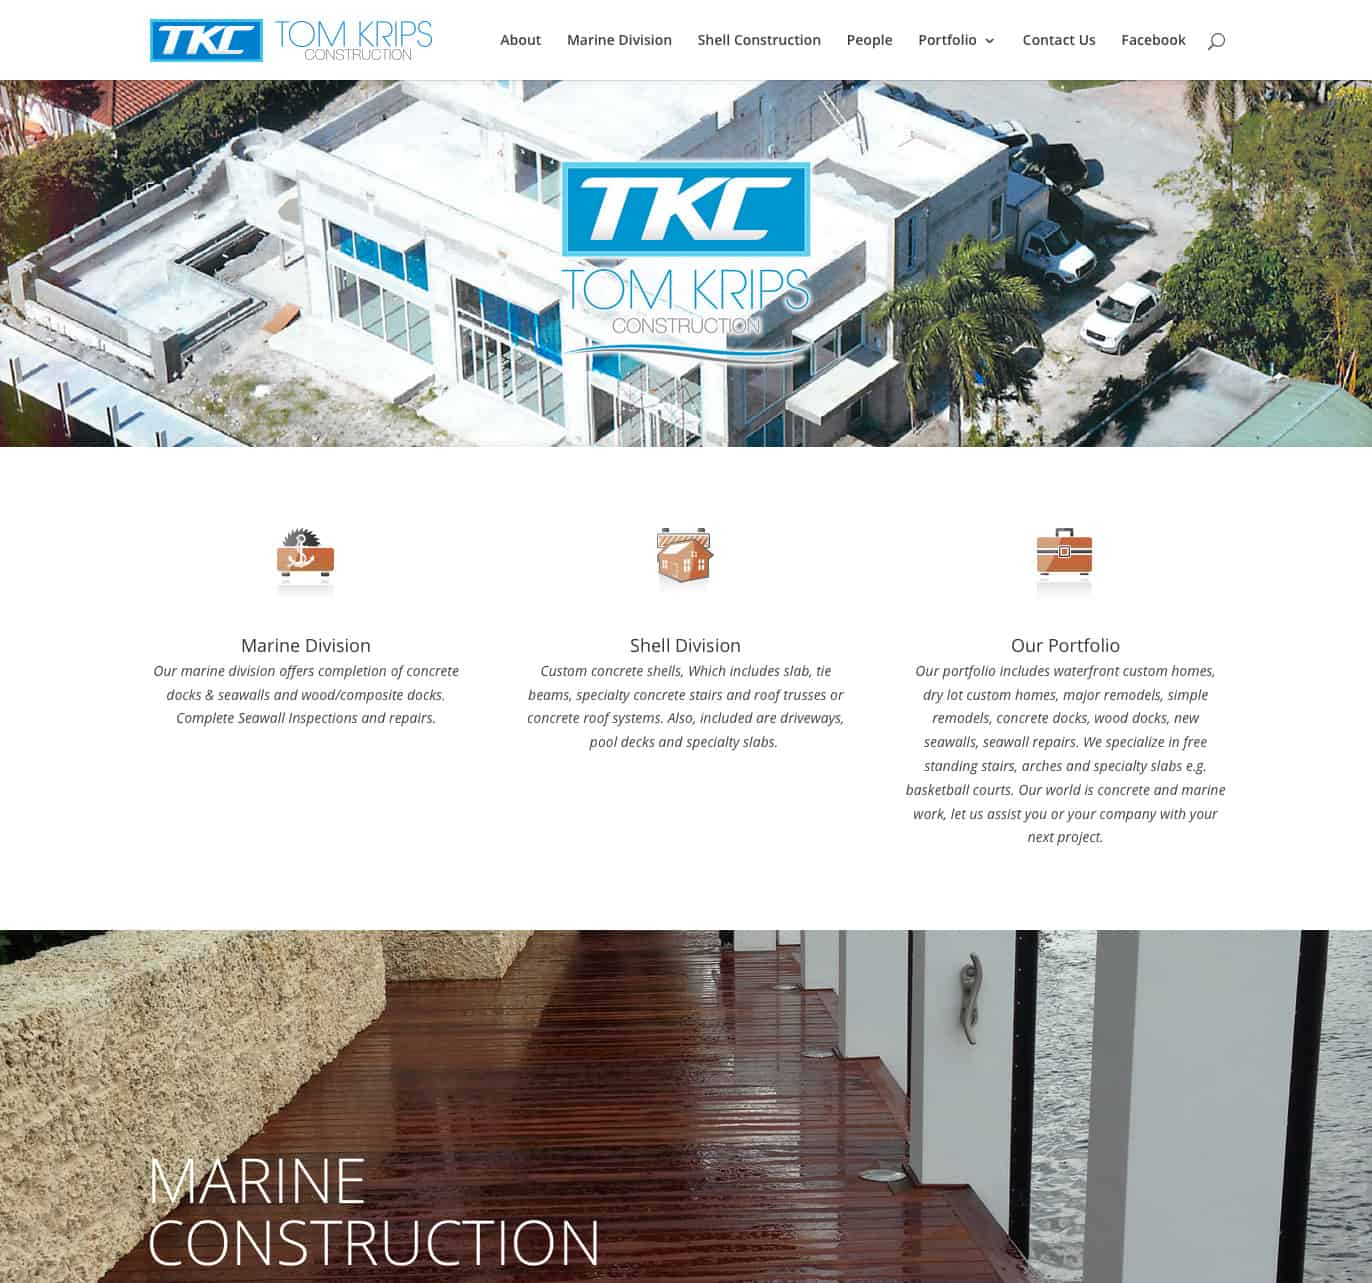 tomkripsconst.com home page